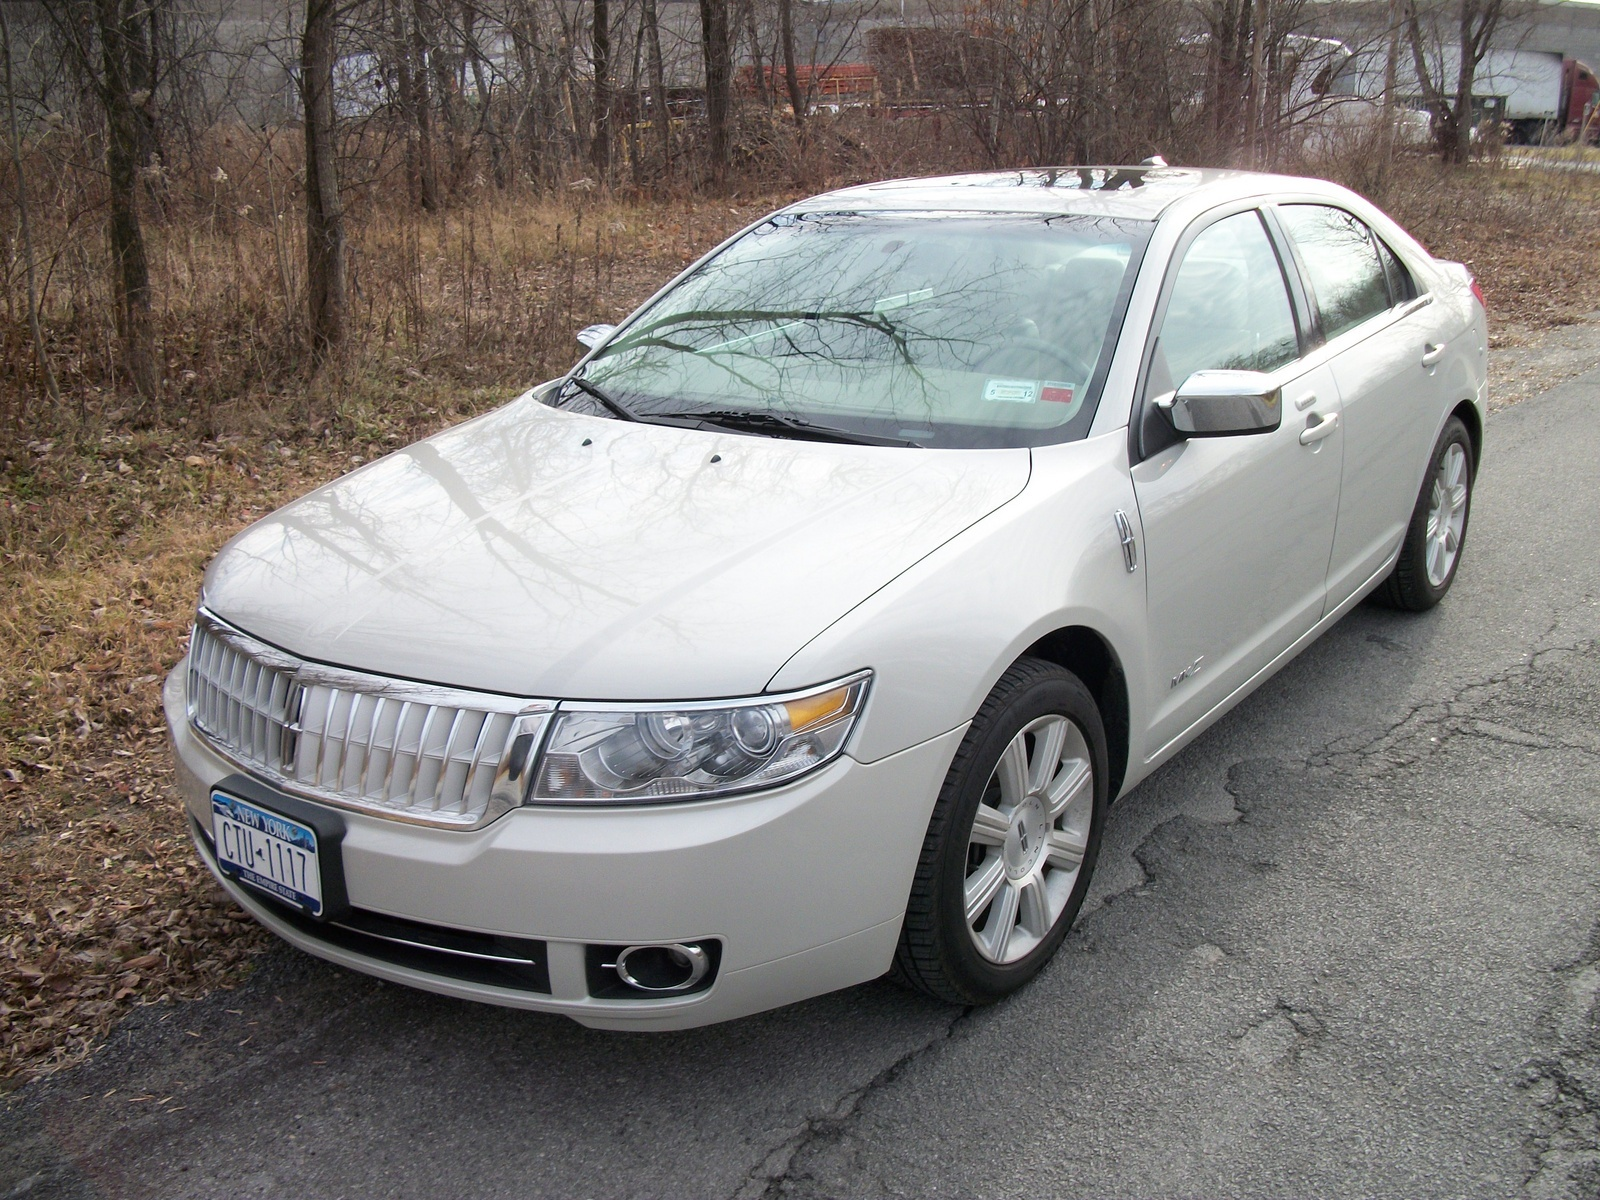 2007 Lincoln MKZ - Overview - CarGurus